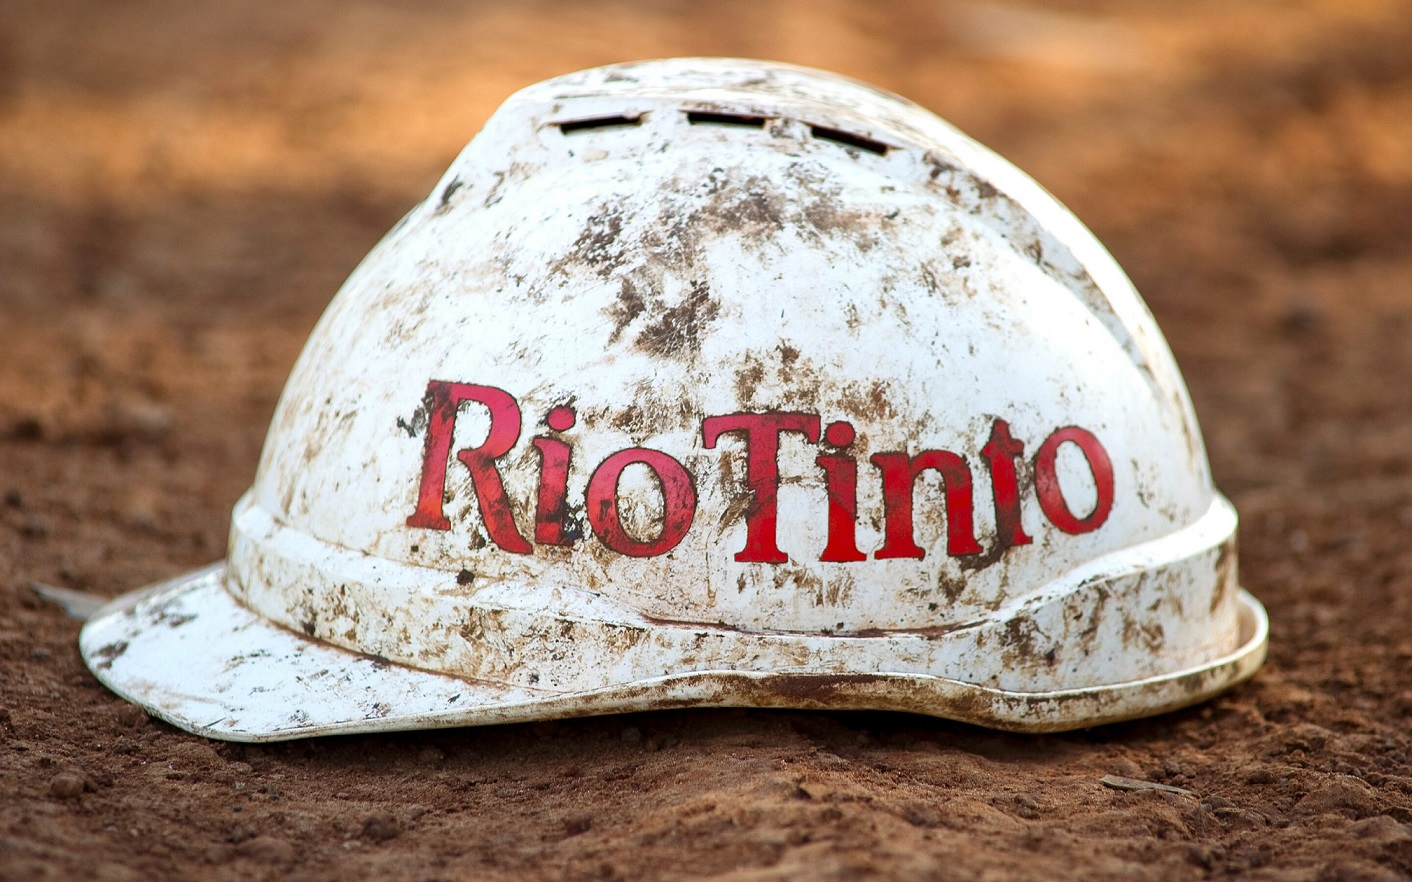 Rio Tinto: about the company, its employment process, aptitude tests and interviews